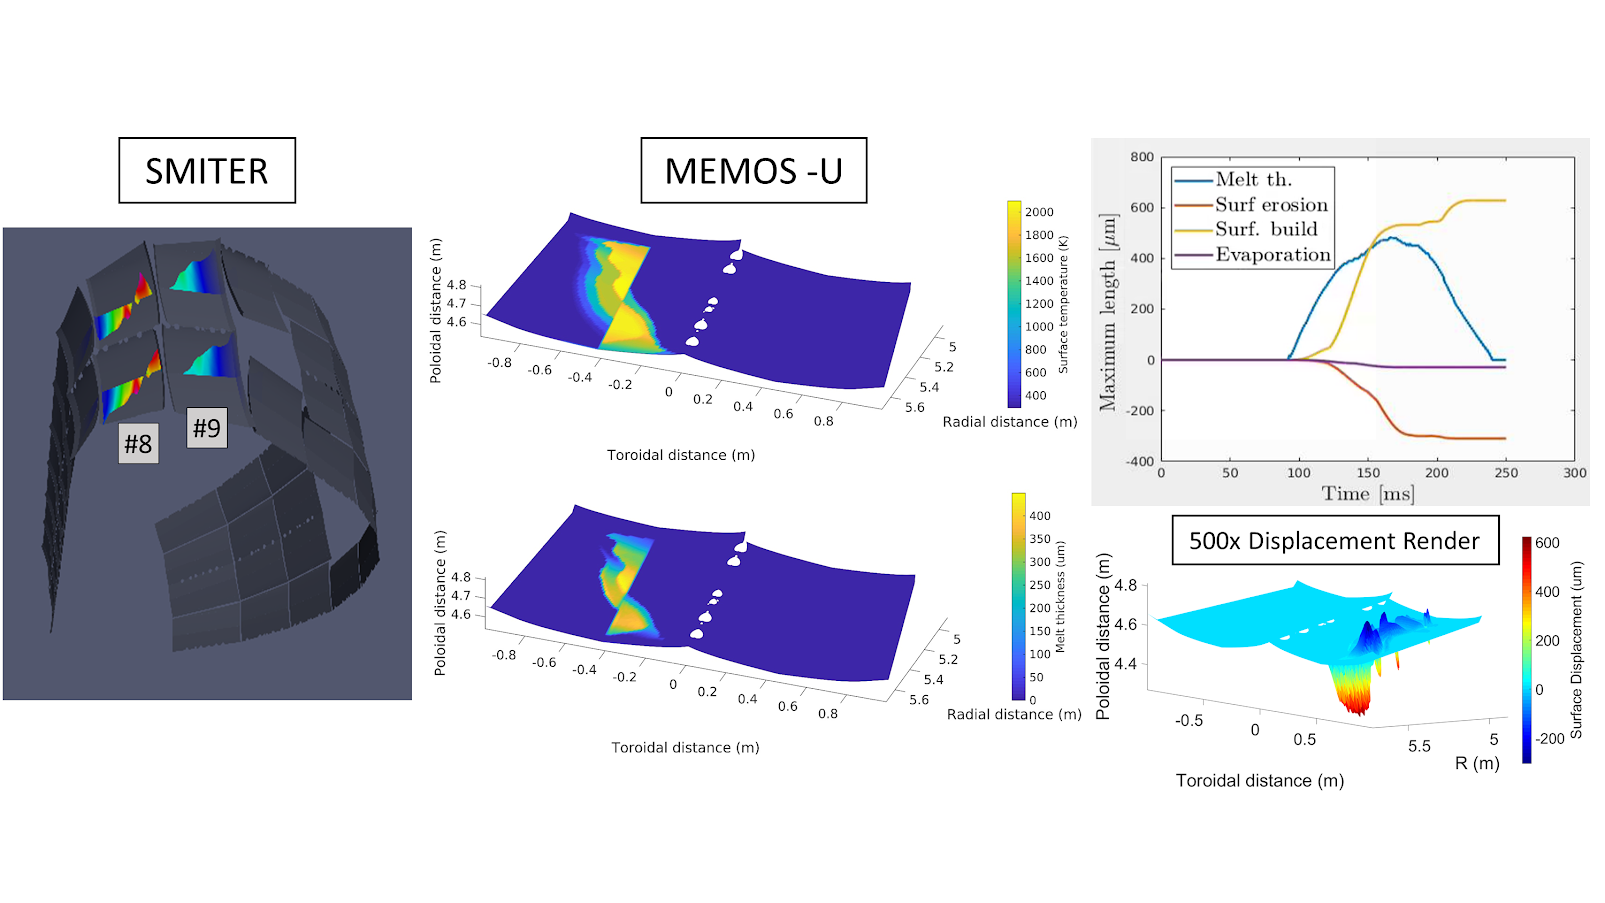 Example simulation results for an upward, 5MA VDE scenario. (Left) Heat flux maps of an ITER poloidal sector rendered in SMITER at one time-step. (Middle) Resultant surface temperature and melt thickness of FWP #9 at the end of the VDE calculated in MEMOS. (Right) Maximum values of melt thickness, surface erosion depth, build-up of surface material, and evaporation thickness vs. time. 3D surface displacement along FWP #9, rendered at 500x magnitude for visualization purposes.